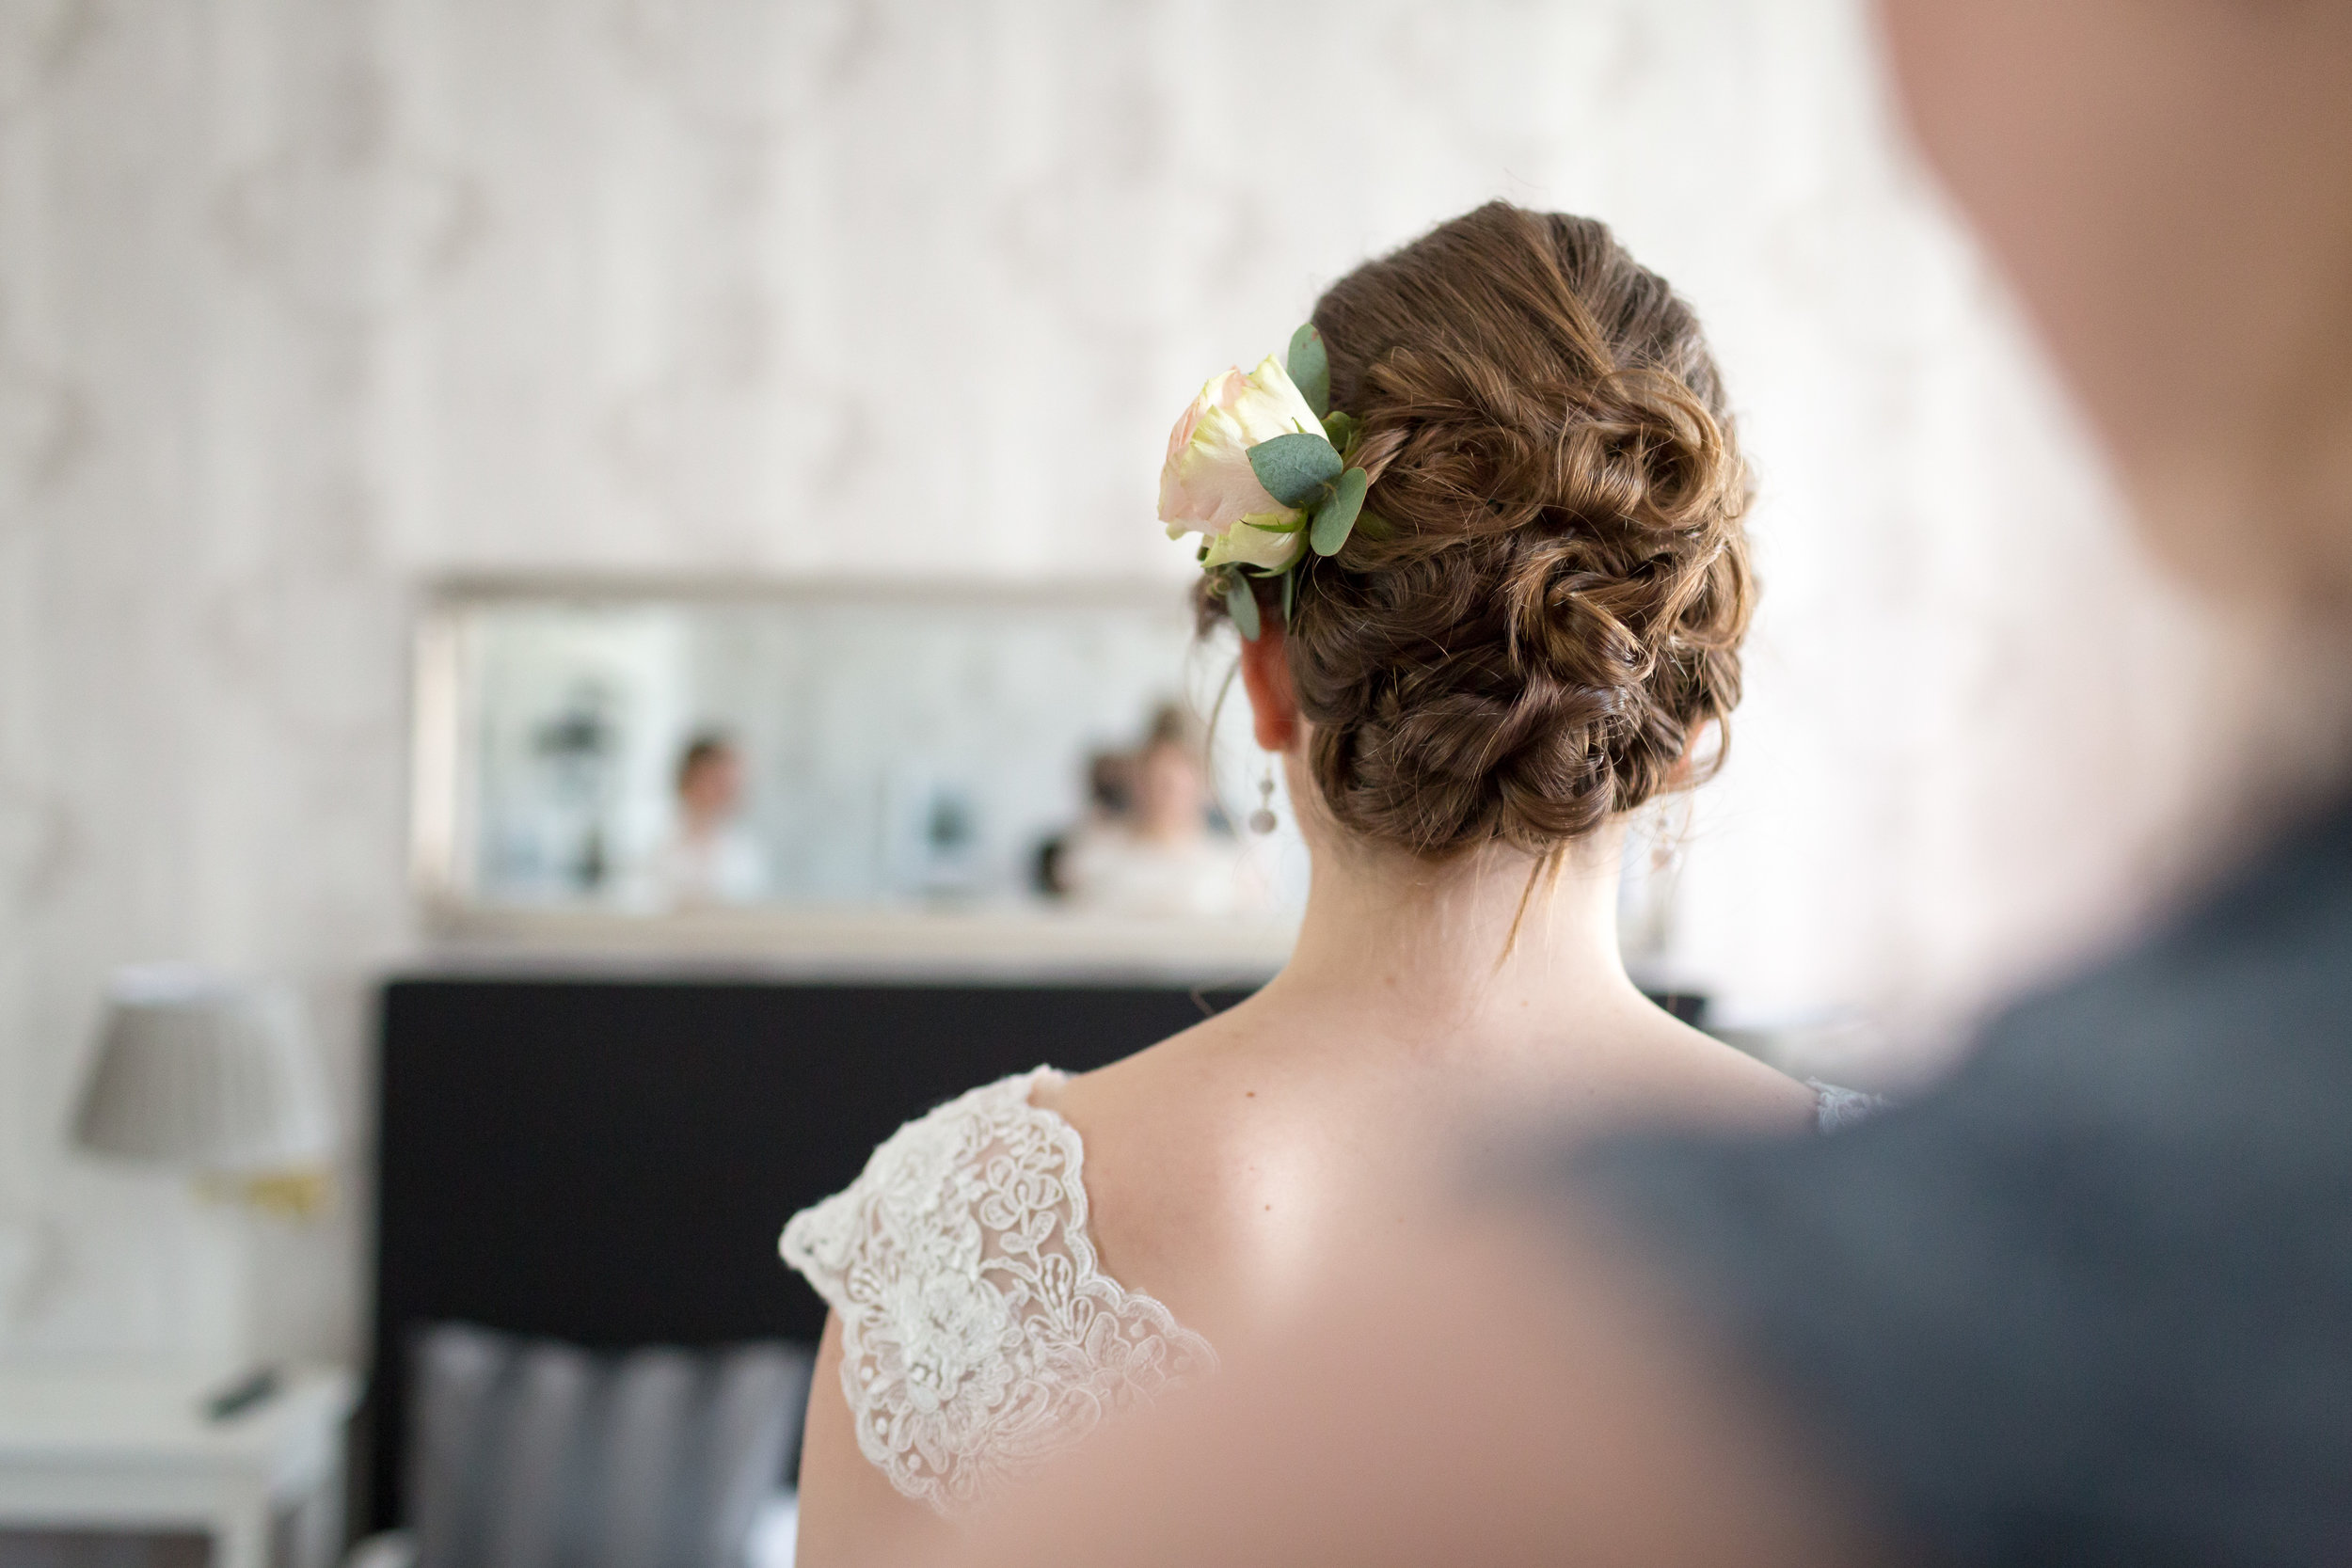 Destination Wedding Getting Ready Planning Tips and Tricks